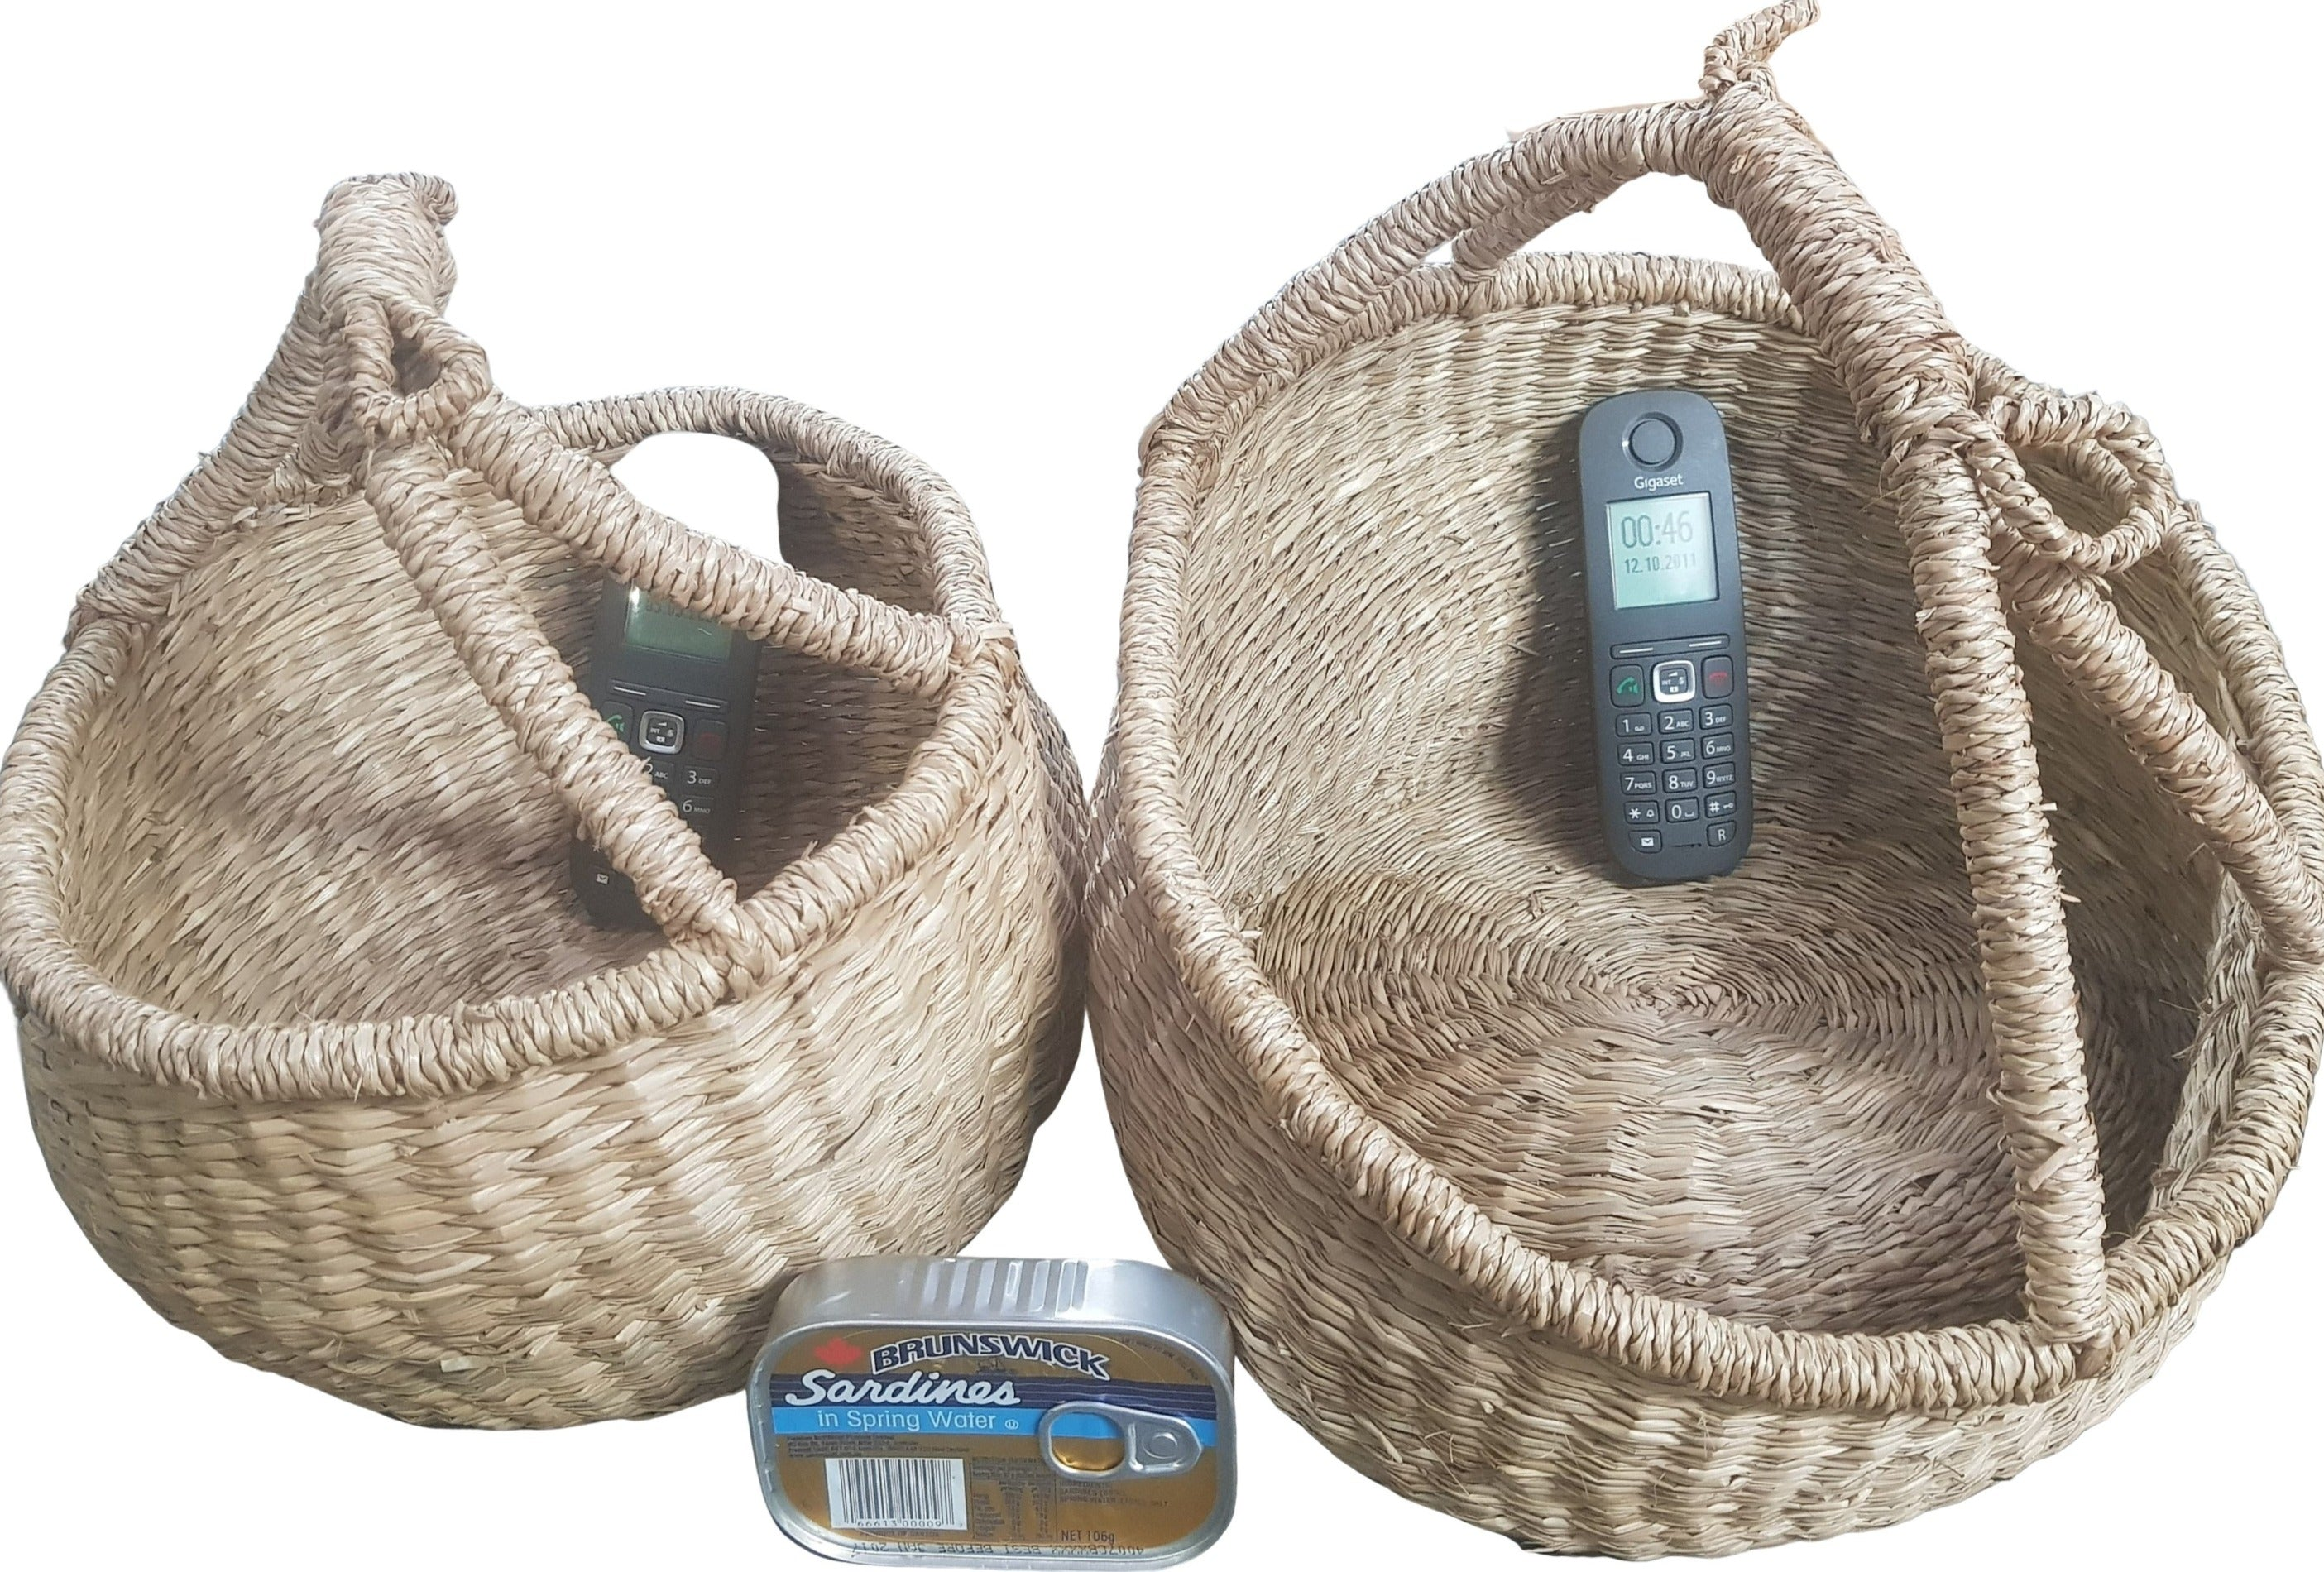 Fishermen's Baskets